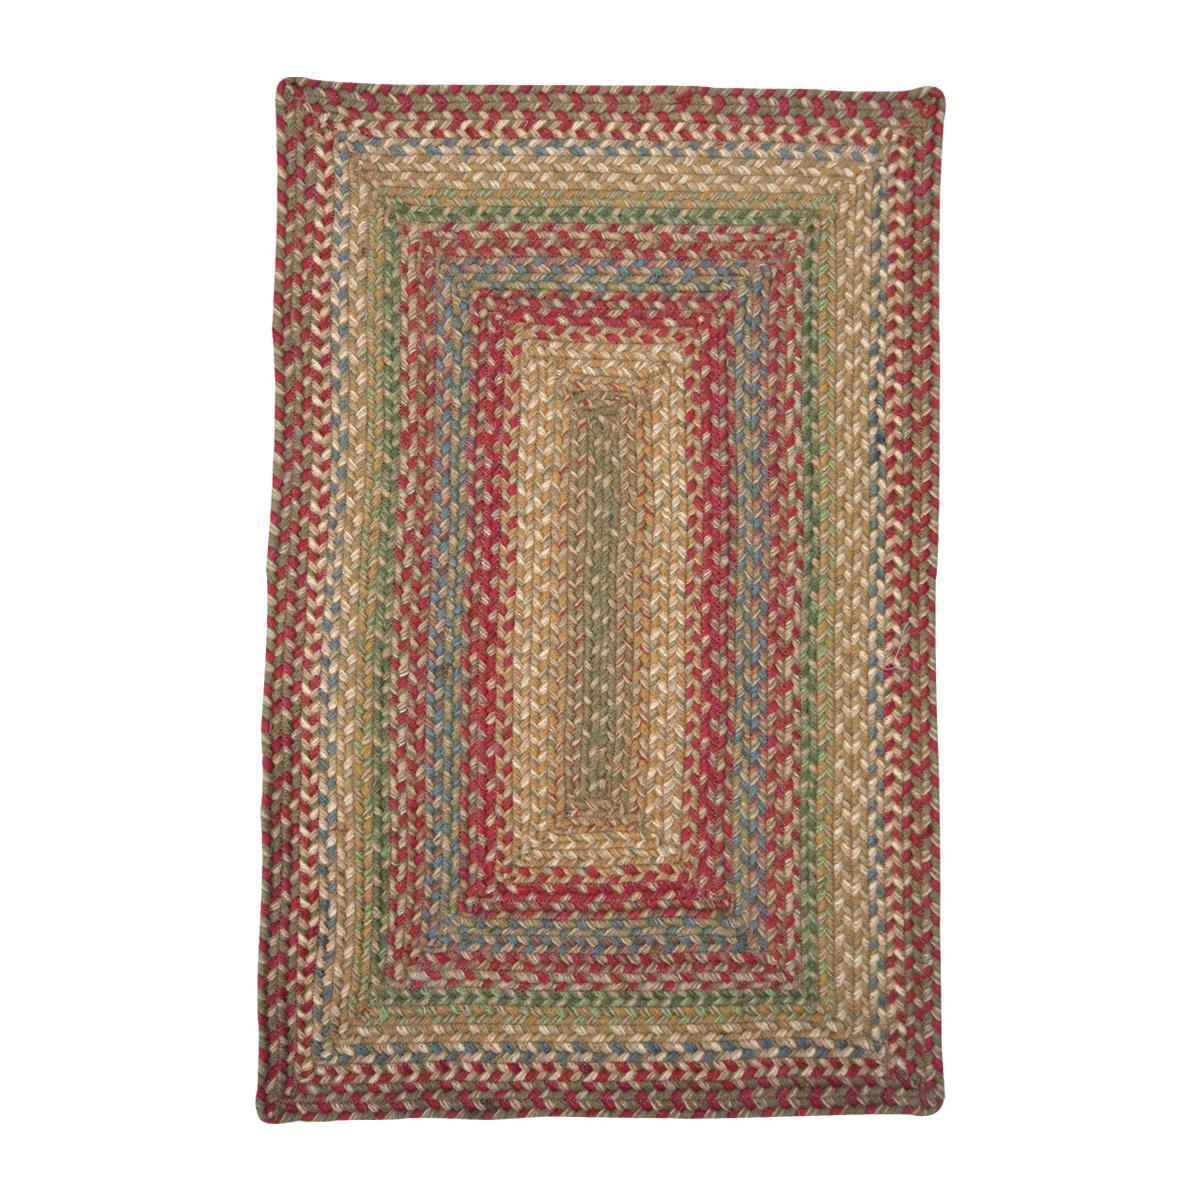 braided rugs image 1 HHKGODM